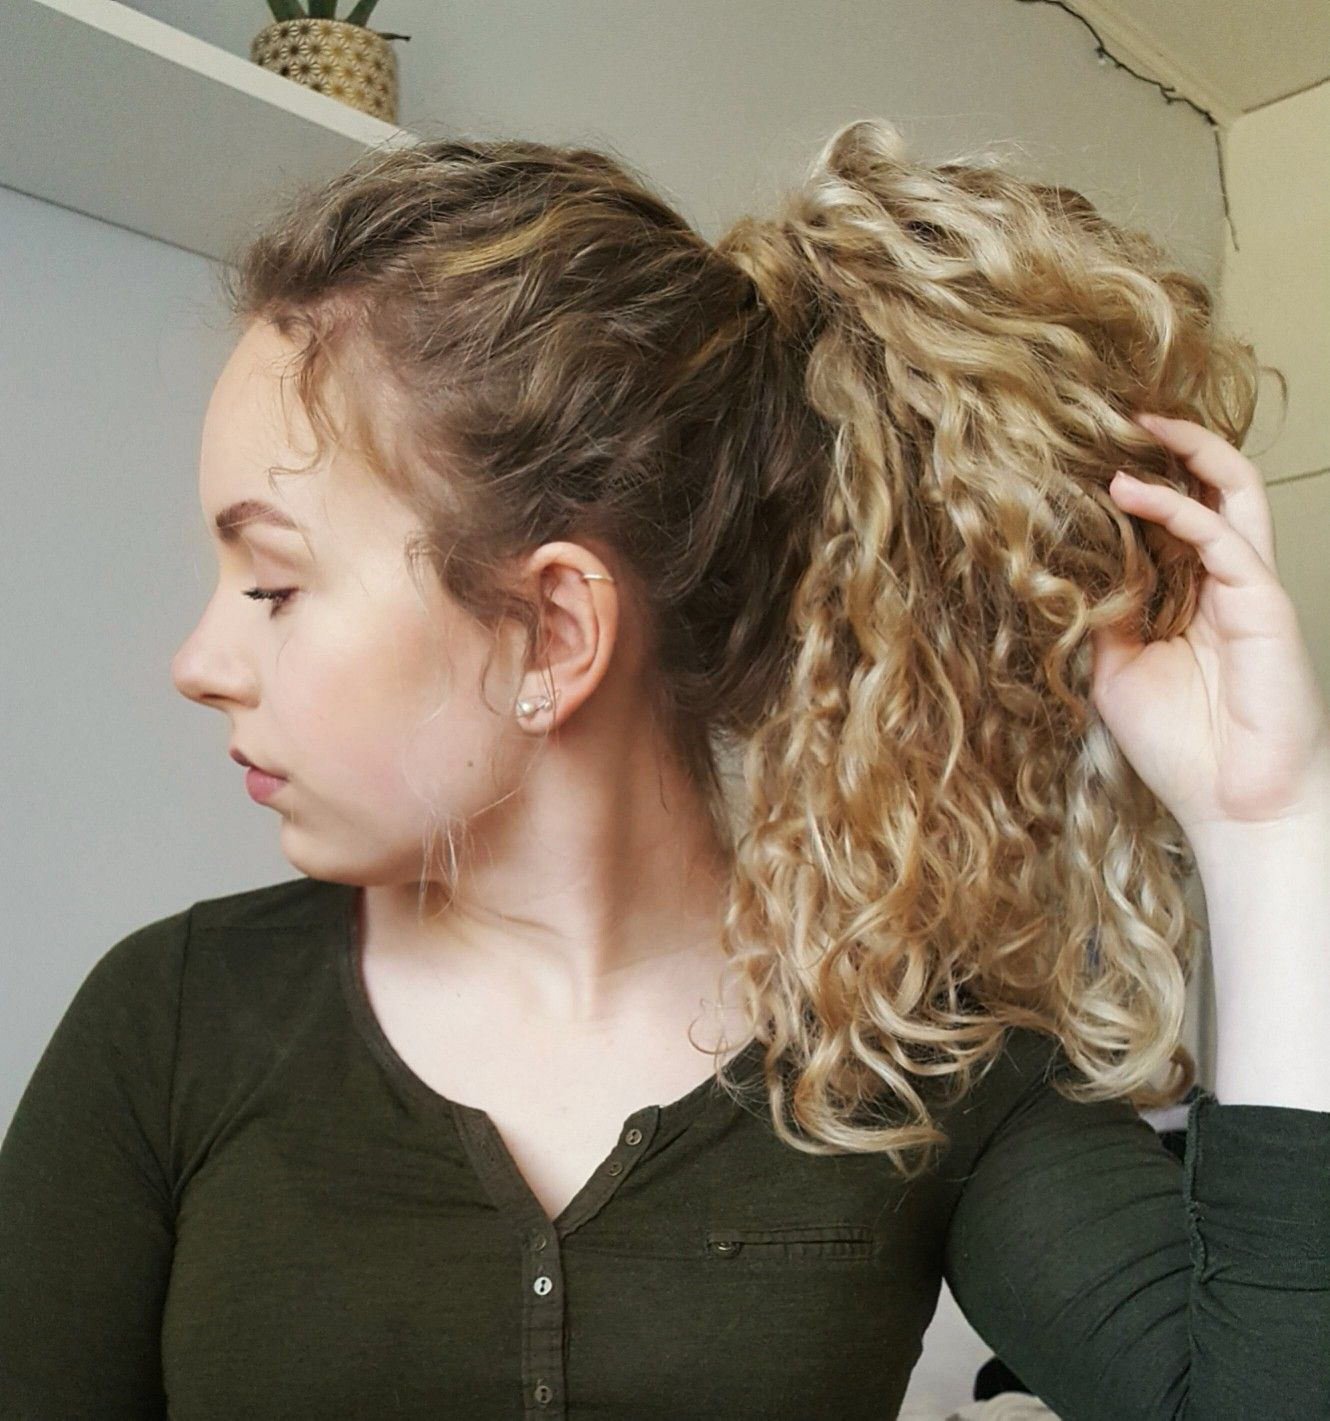 naturally curly hair hairstyles